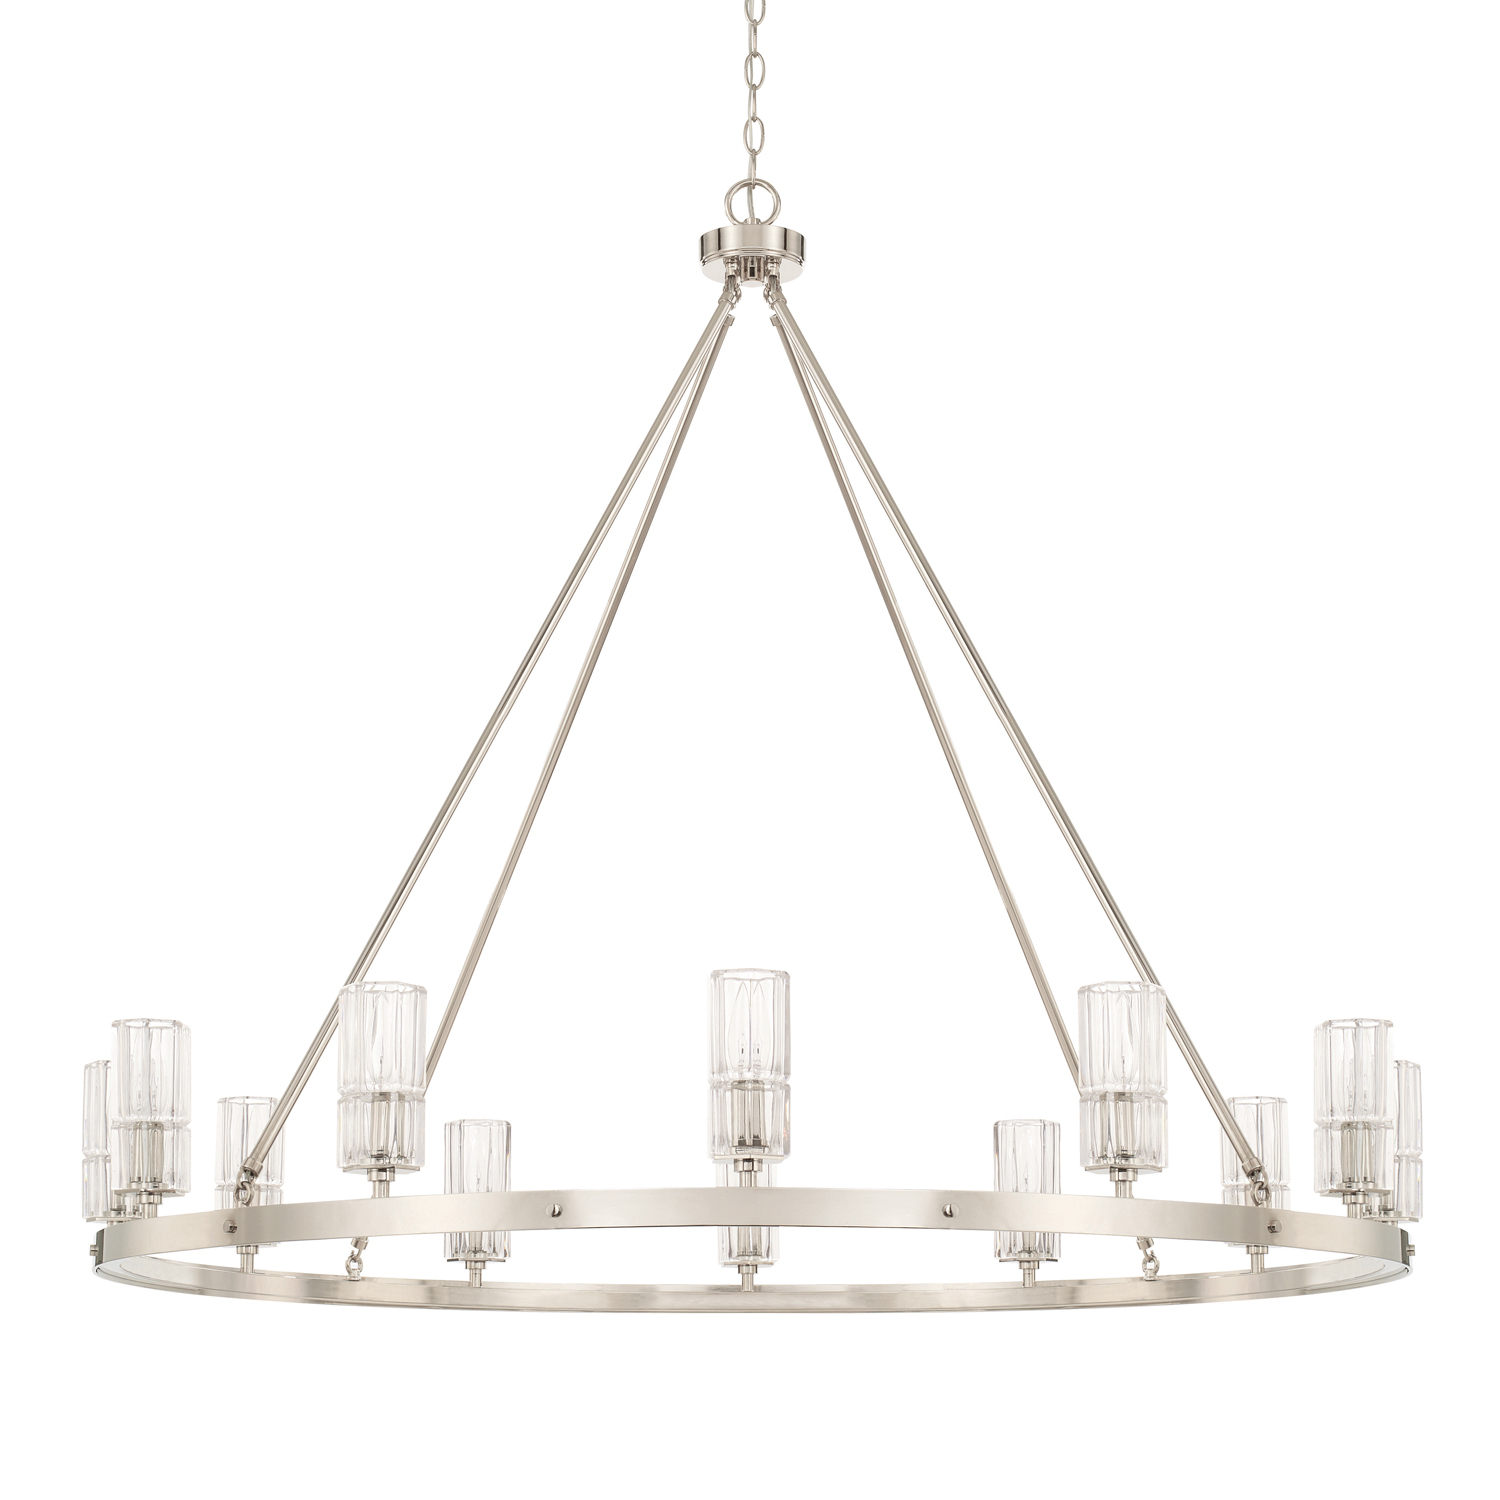 12 Light Chandelier from the Sloane collection by Capital Lighting 427601PN 457